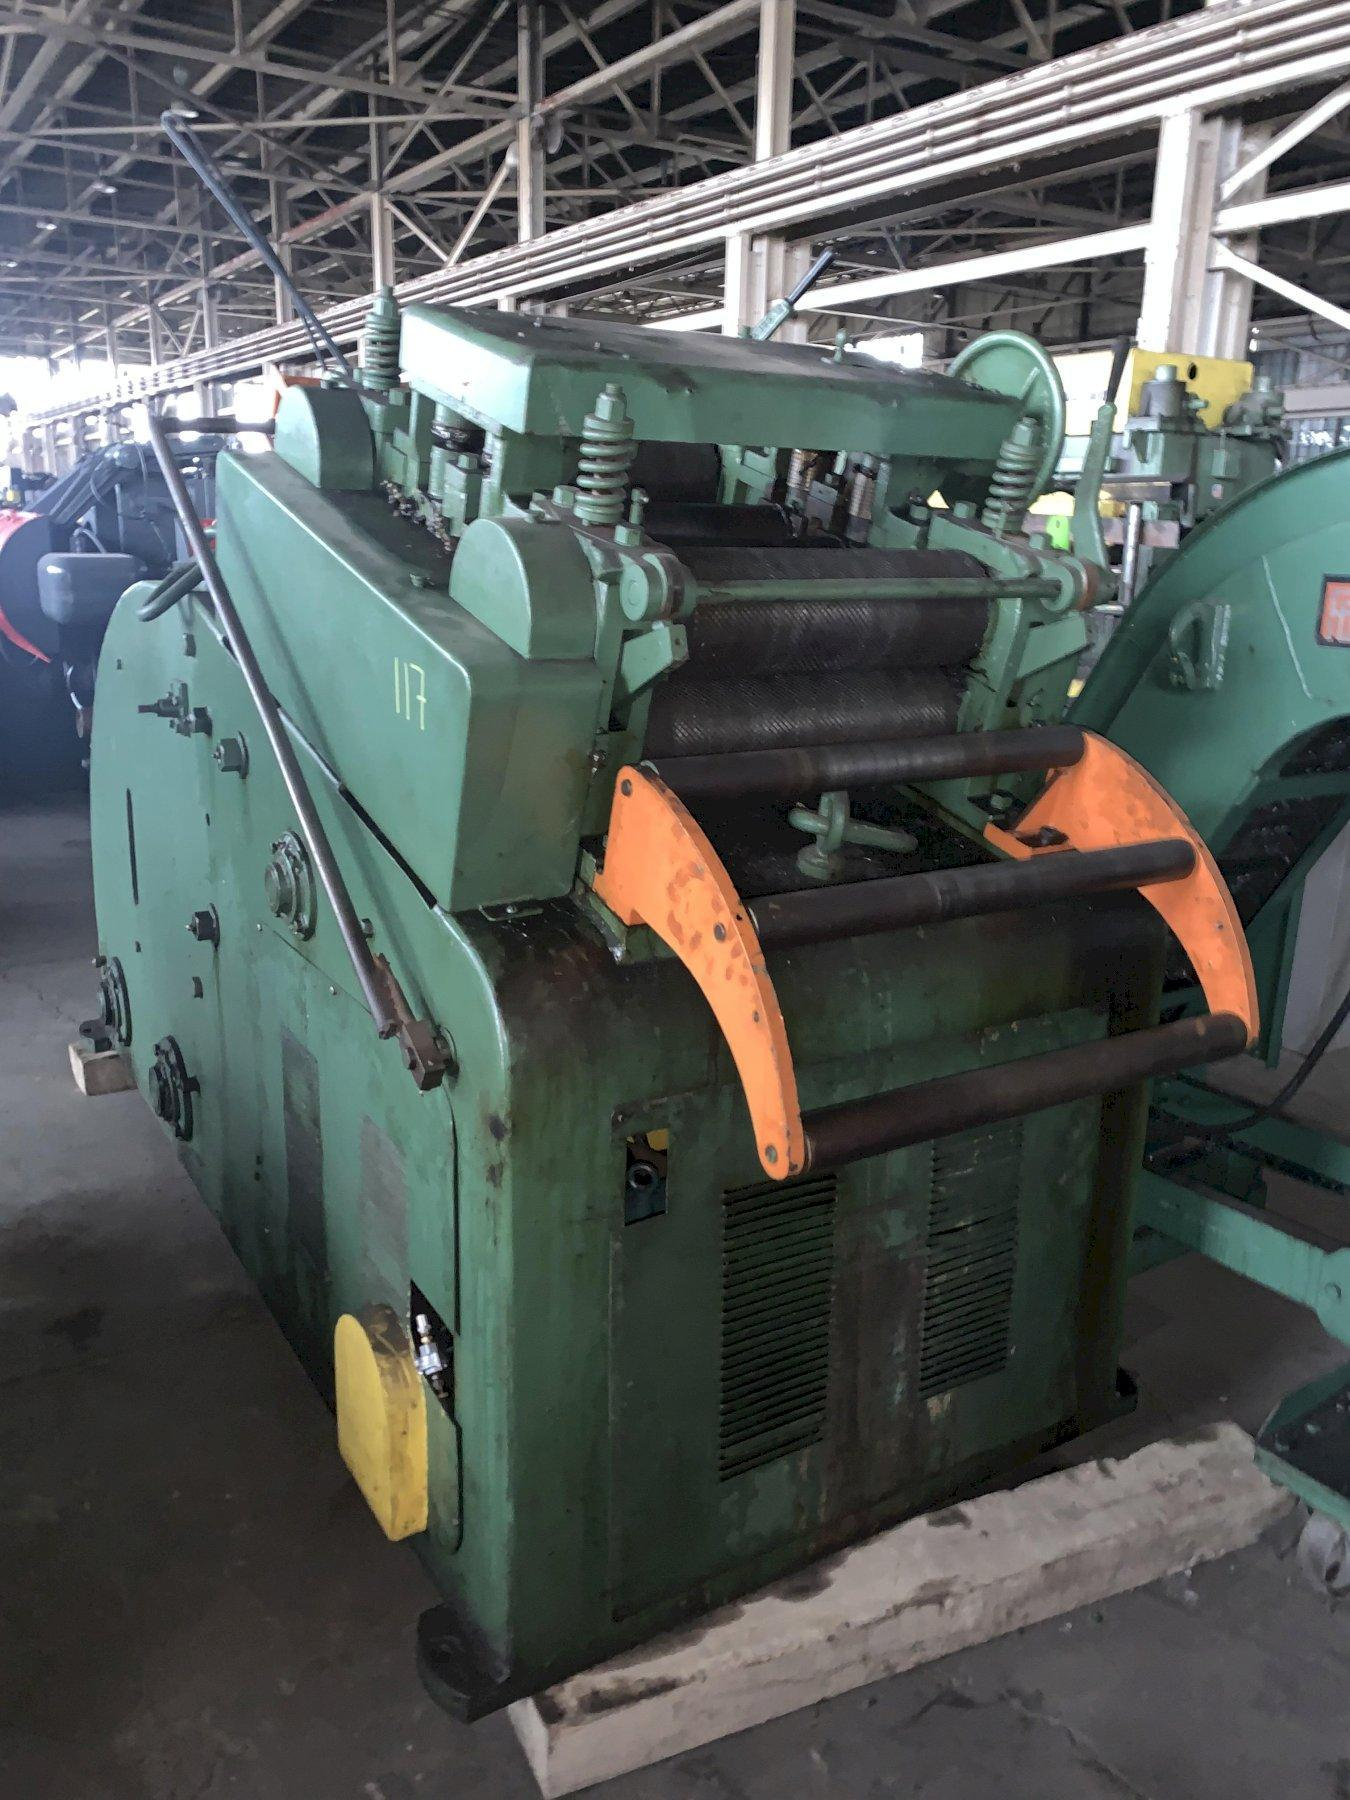 """.187 X 18"""" LITTELL #620D-5PD CONTINUOUS STRAIGHTENER & COIL CRADLE: STOCK #10481"""